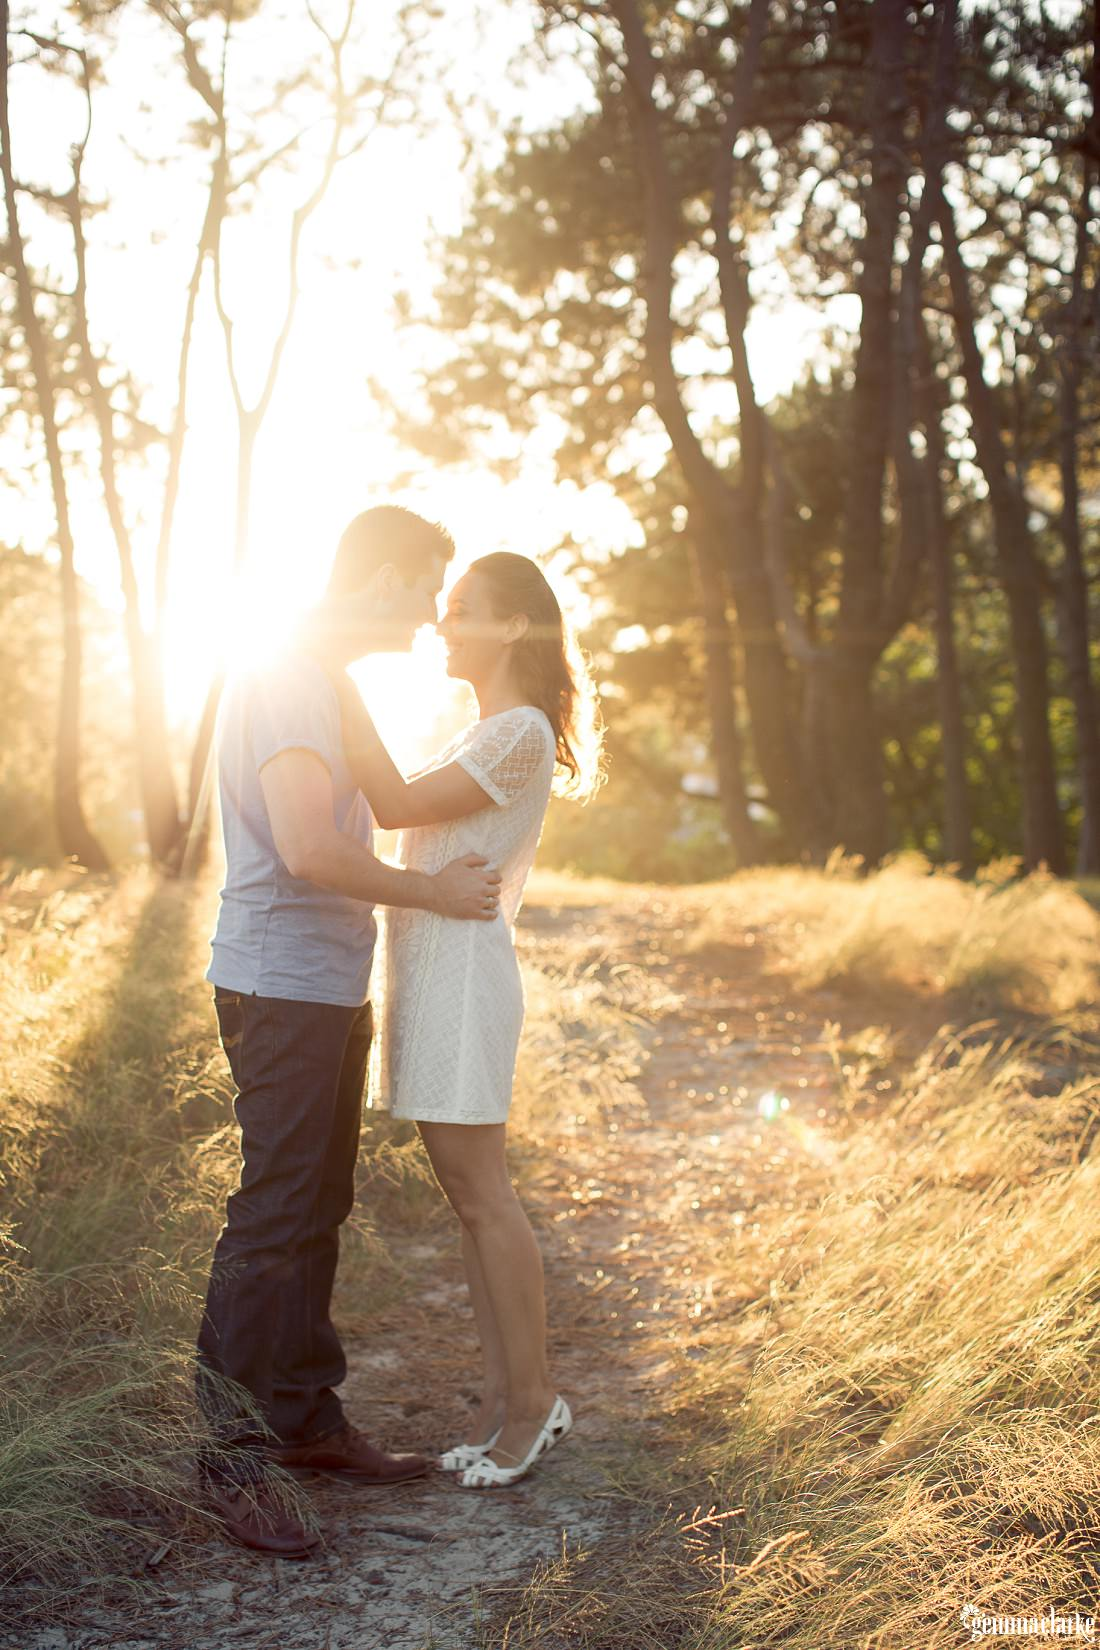 gemmaclarkephotography_centennial-park-engagement-photos_luisa-and-nick_0003